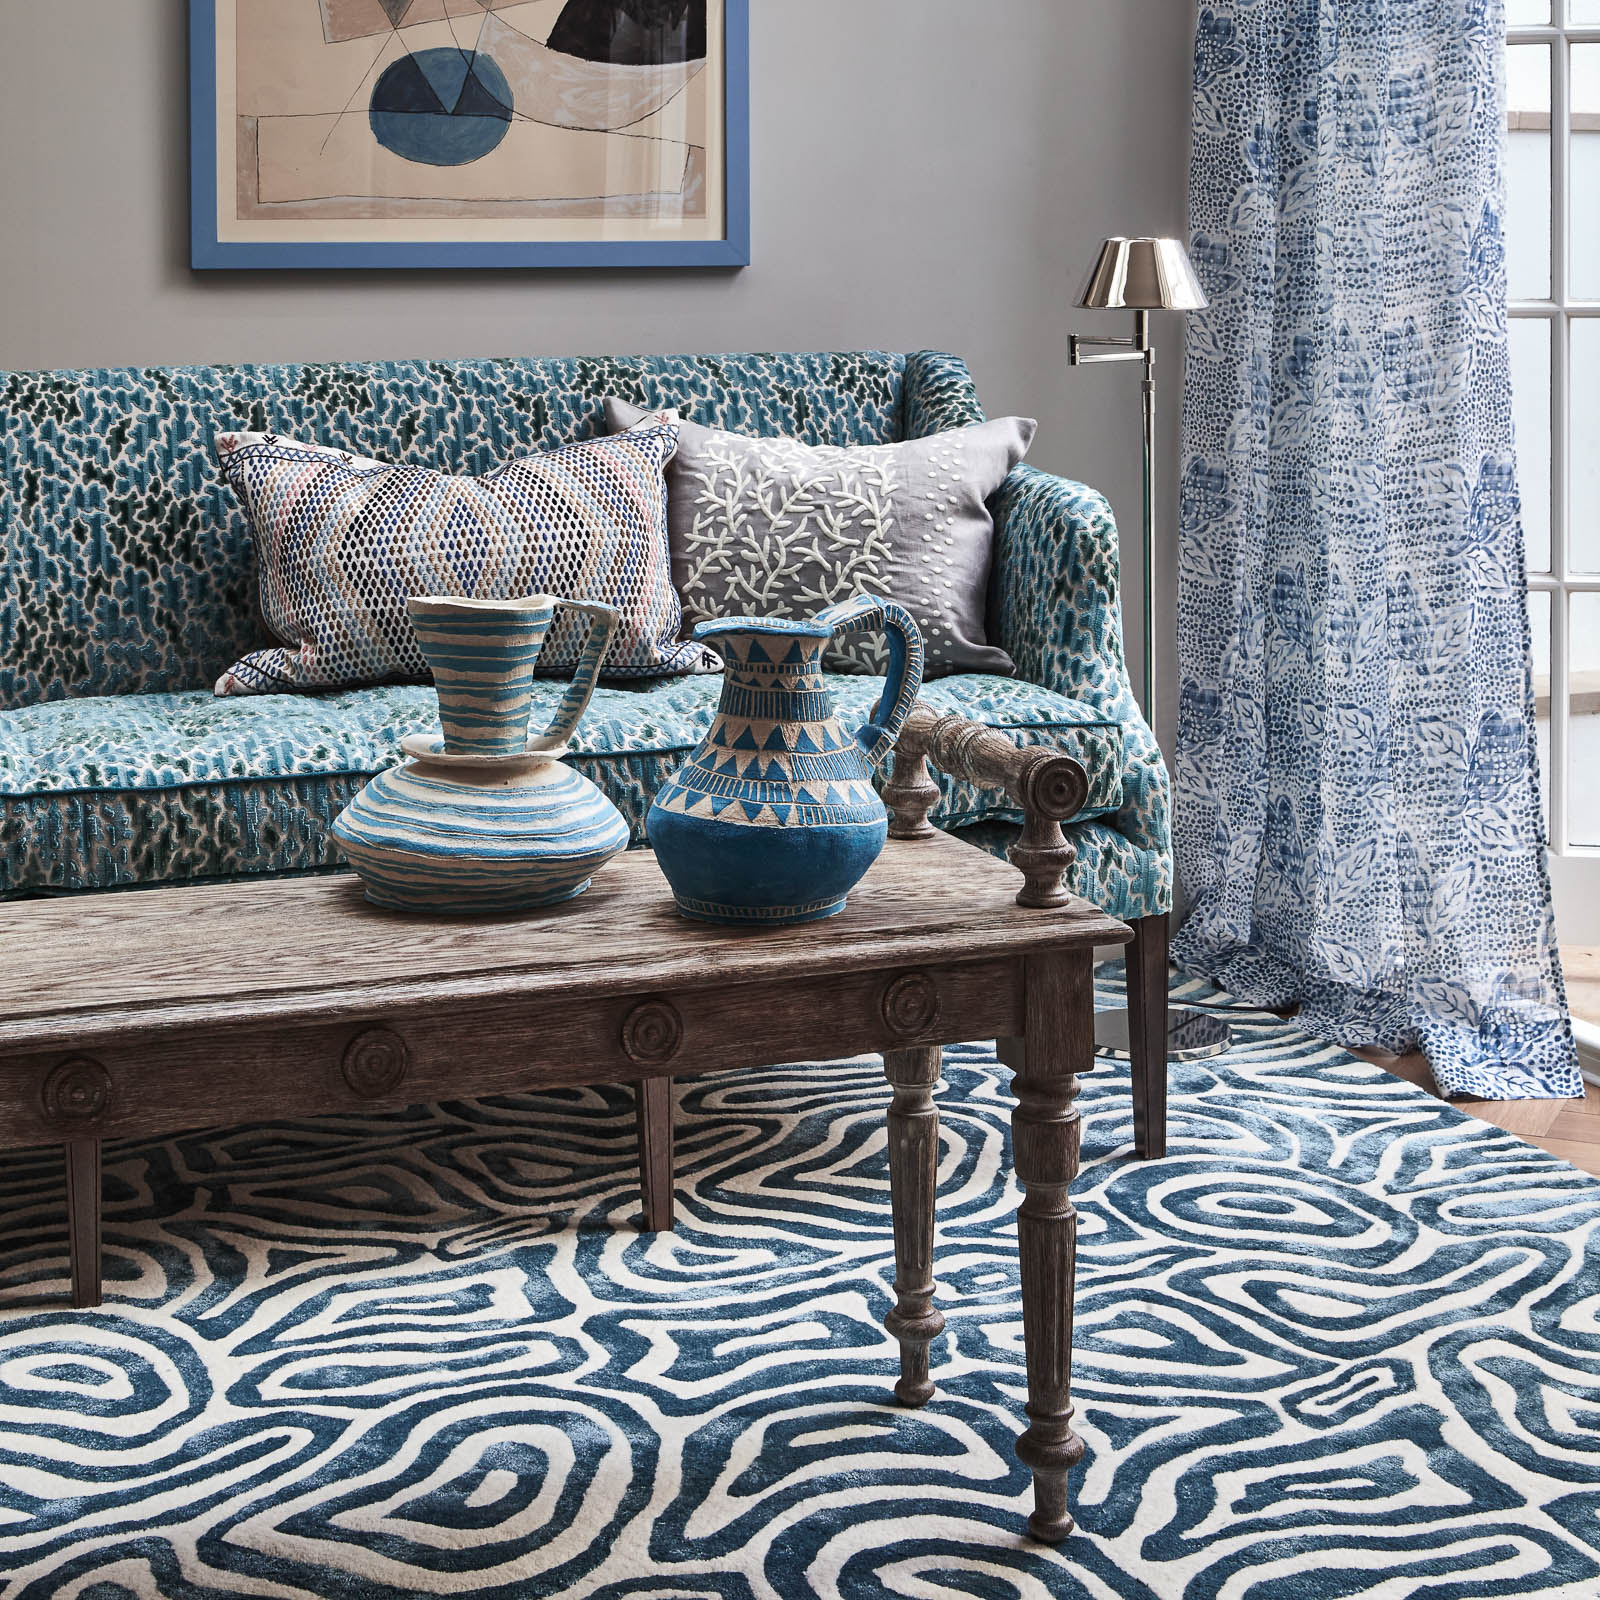 Rhoscolyn rugs in Cobalt by William Yeoward